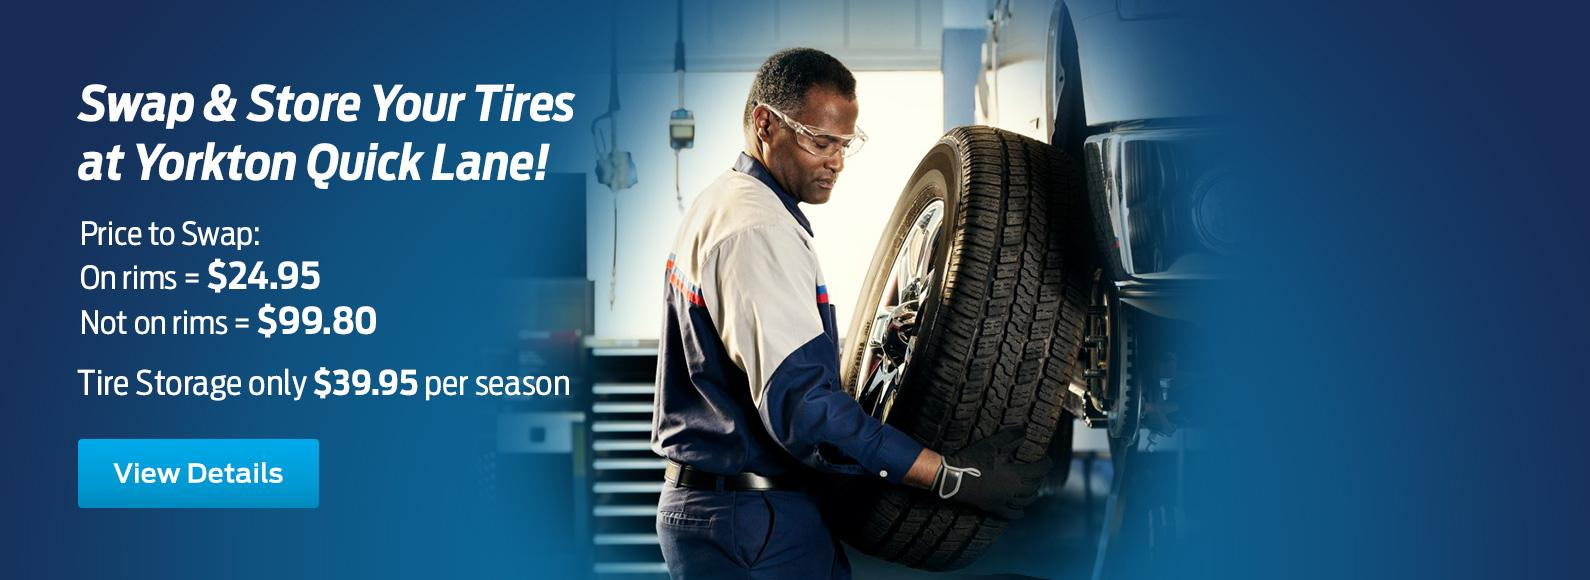 Tire Rotation Royal Ford Yorkton